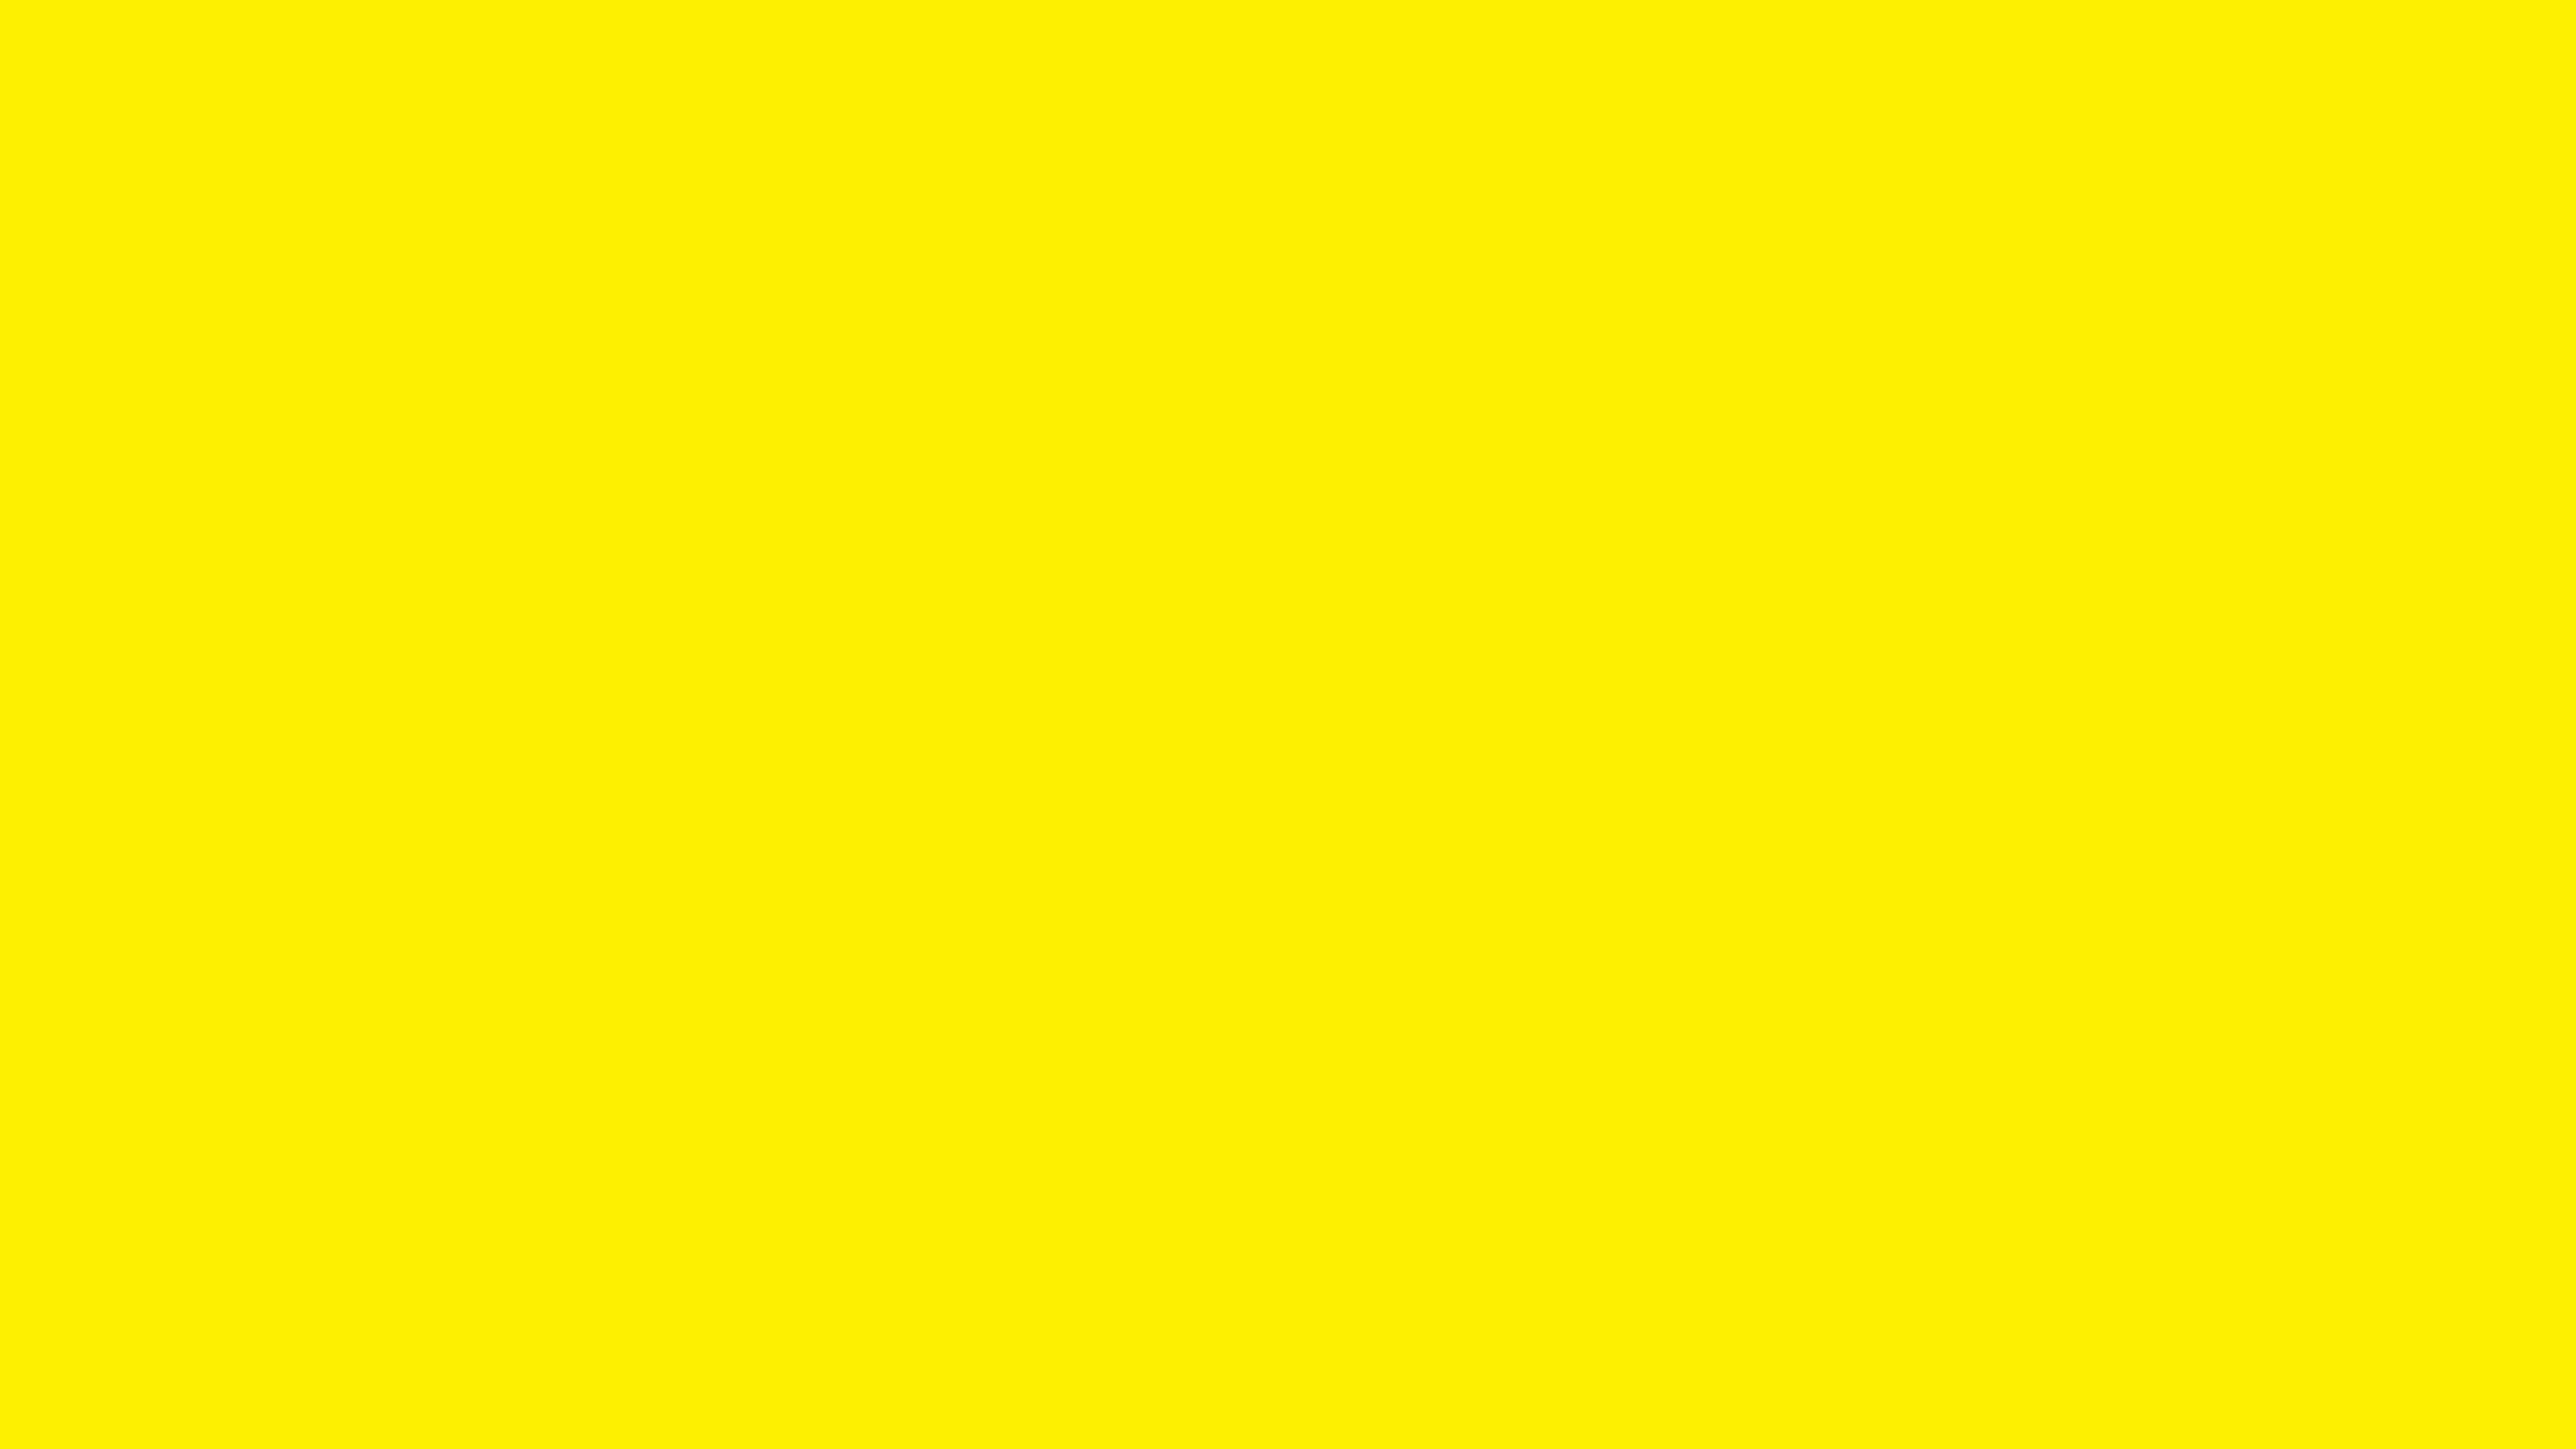 3840x2160 Canary Yellow Solid Color Background